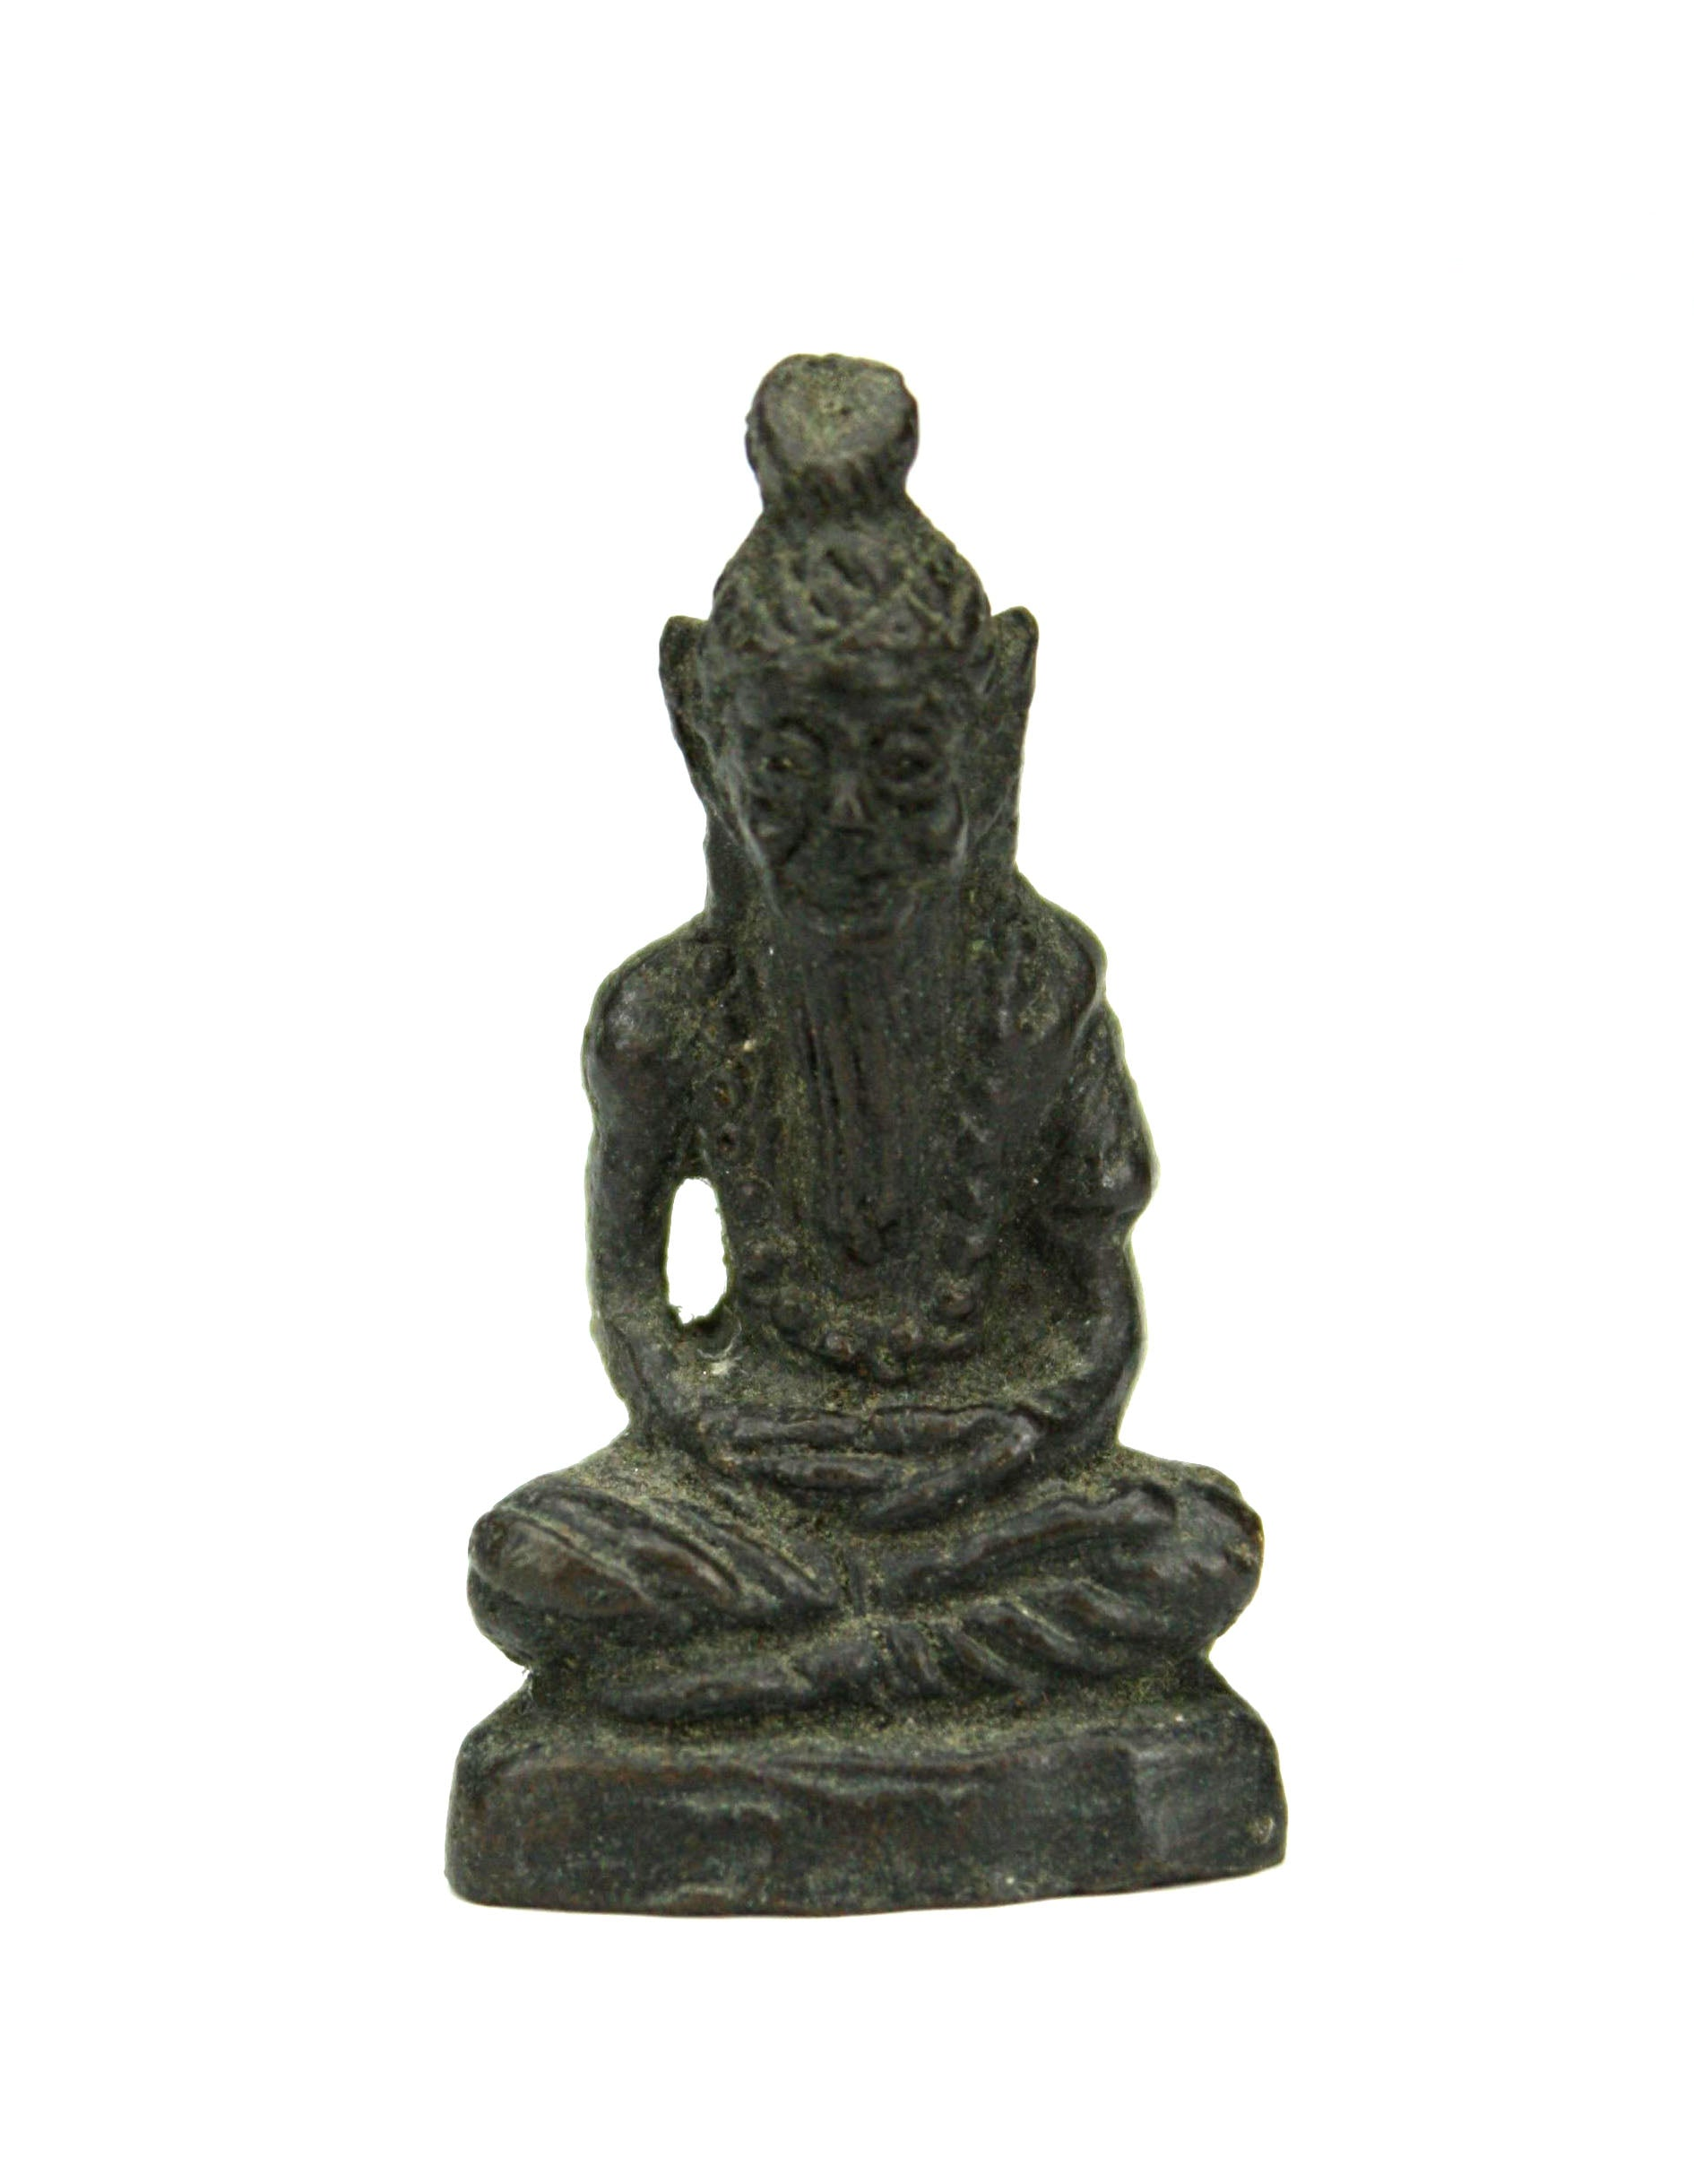 Holy Man Buddhist and Hindu Votive Amulet - 3.7cm high, Product Code GS. Statue - farangshop-co